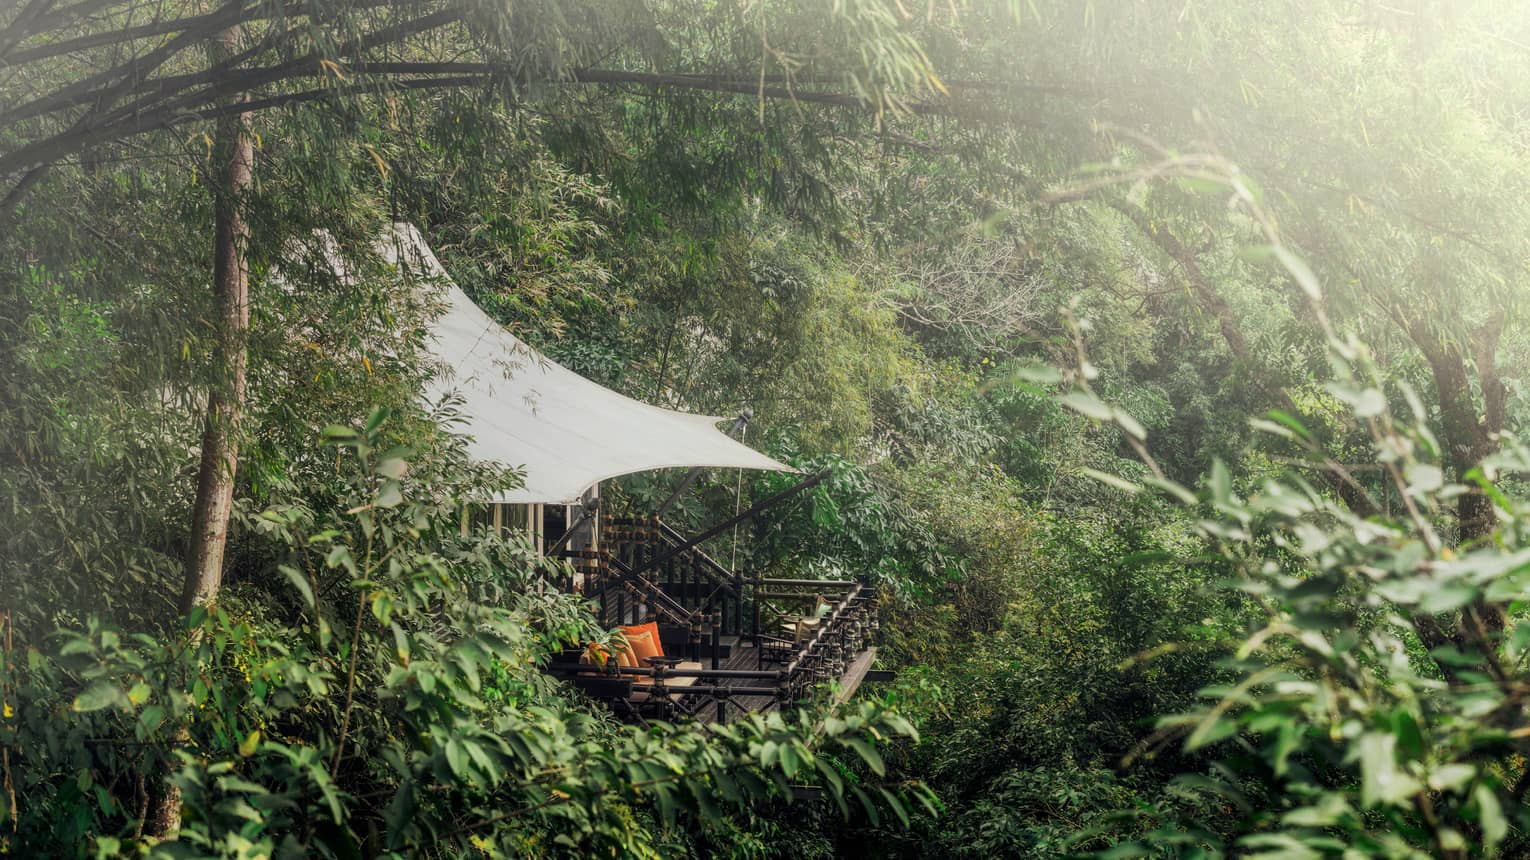 White tent canopy, wood balcony on misty mountain surrounded by bamboo forest